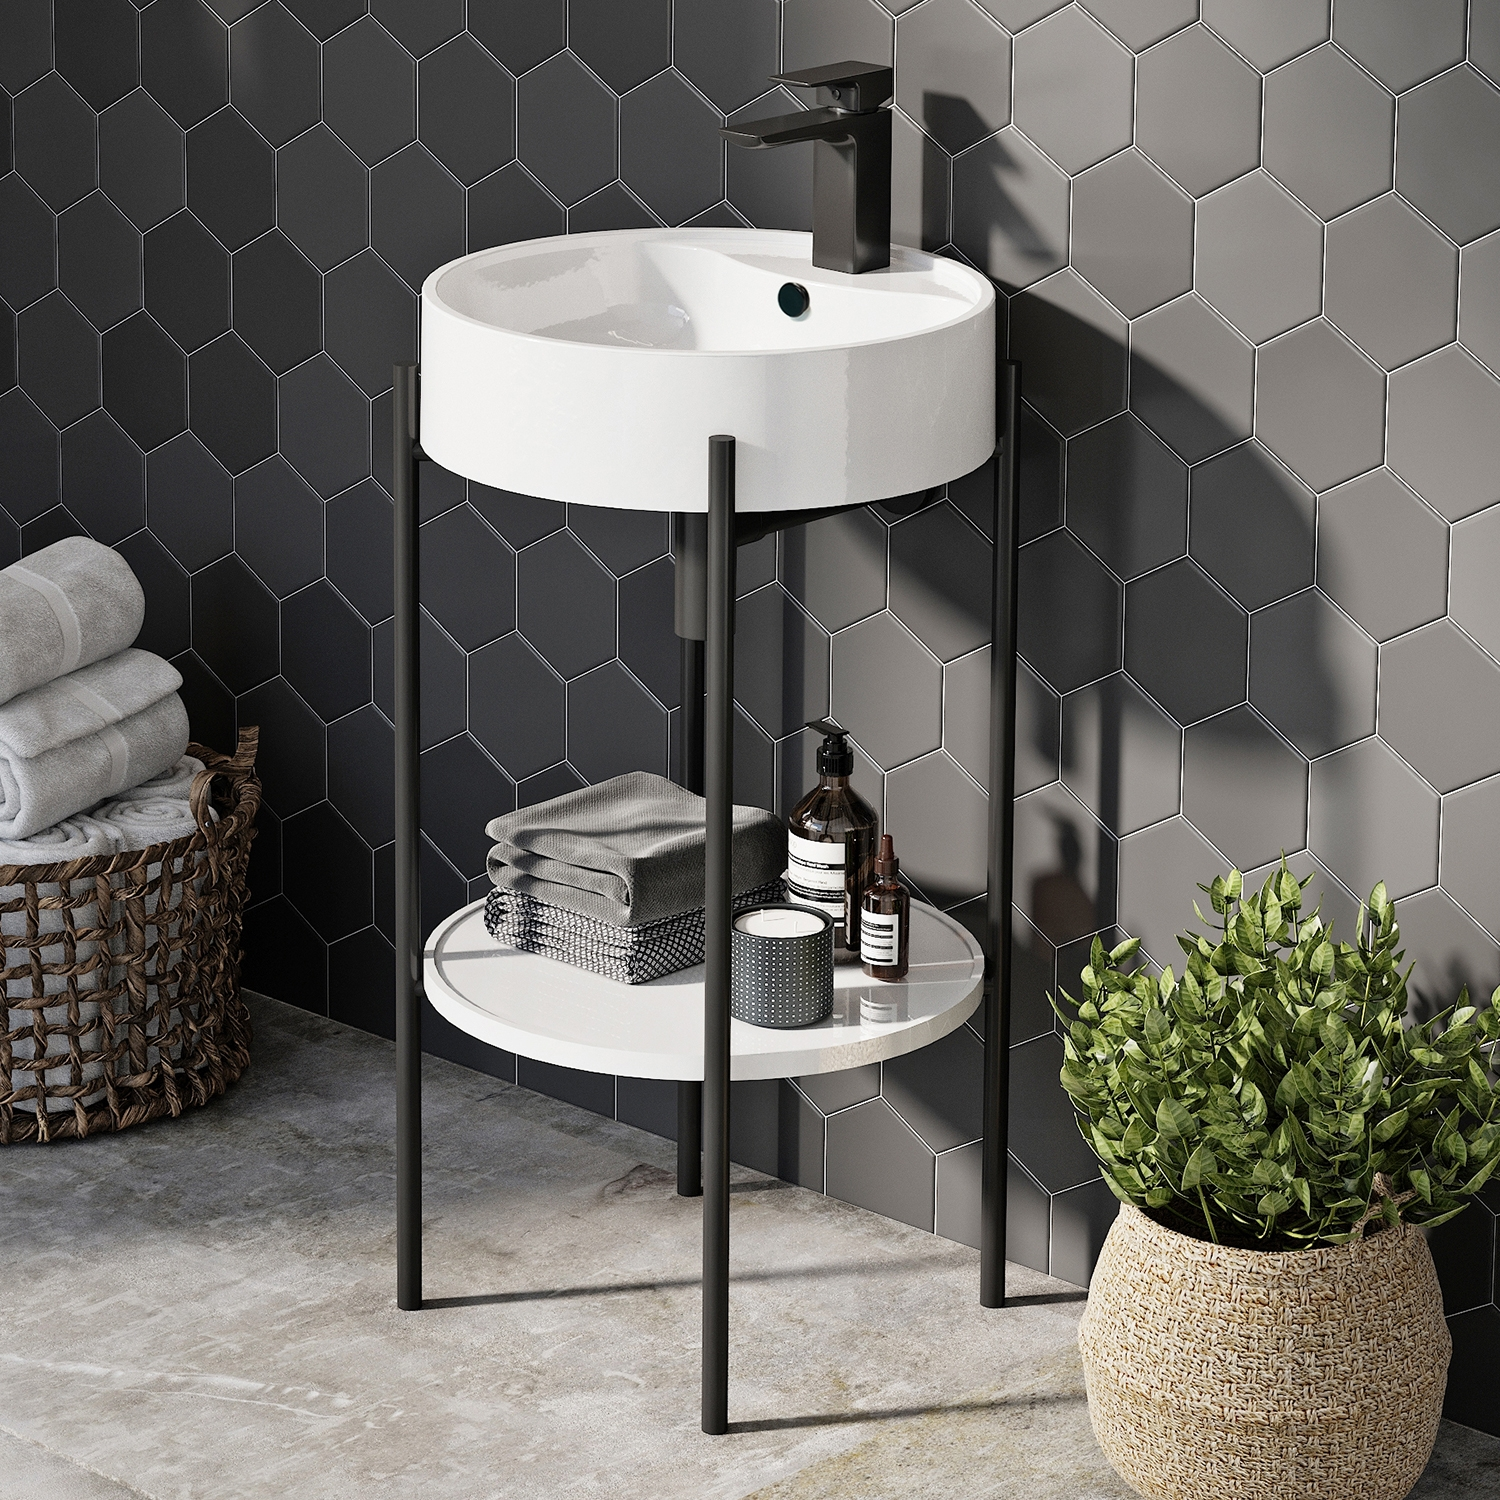 Orbit Supreme Round Basin with Stand 450mm Wide - 1 Tap Hole